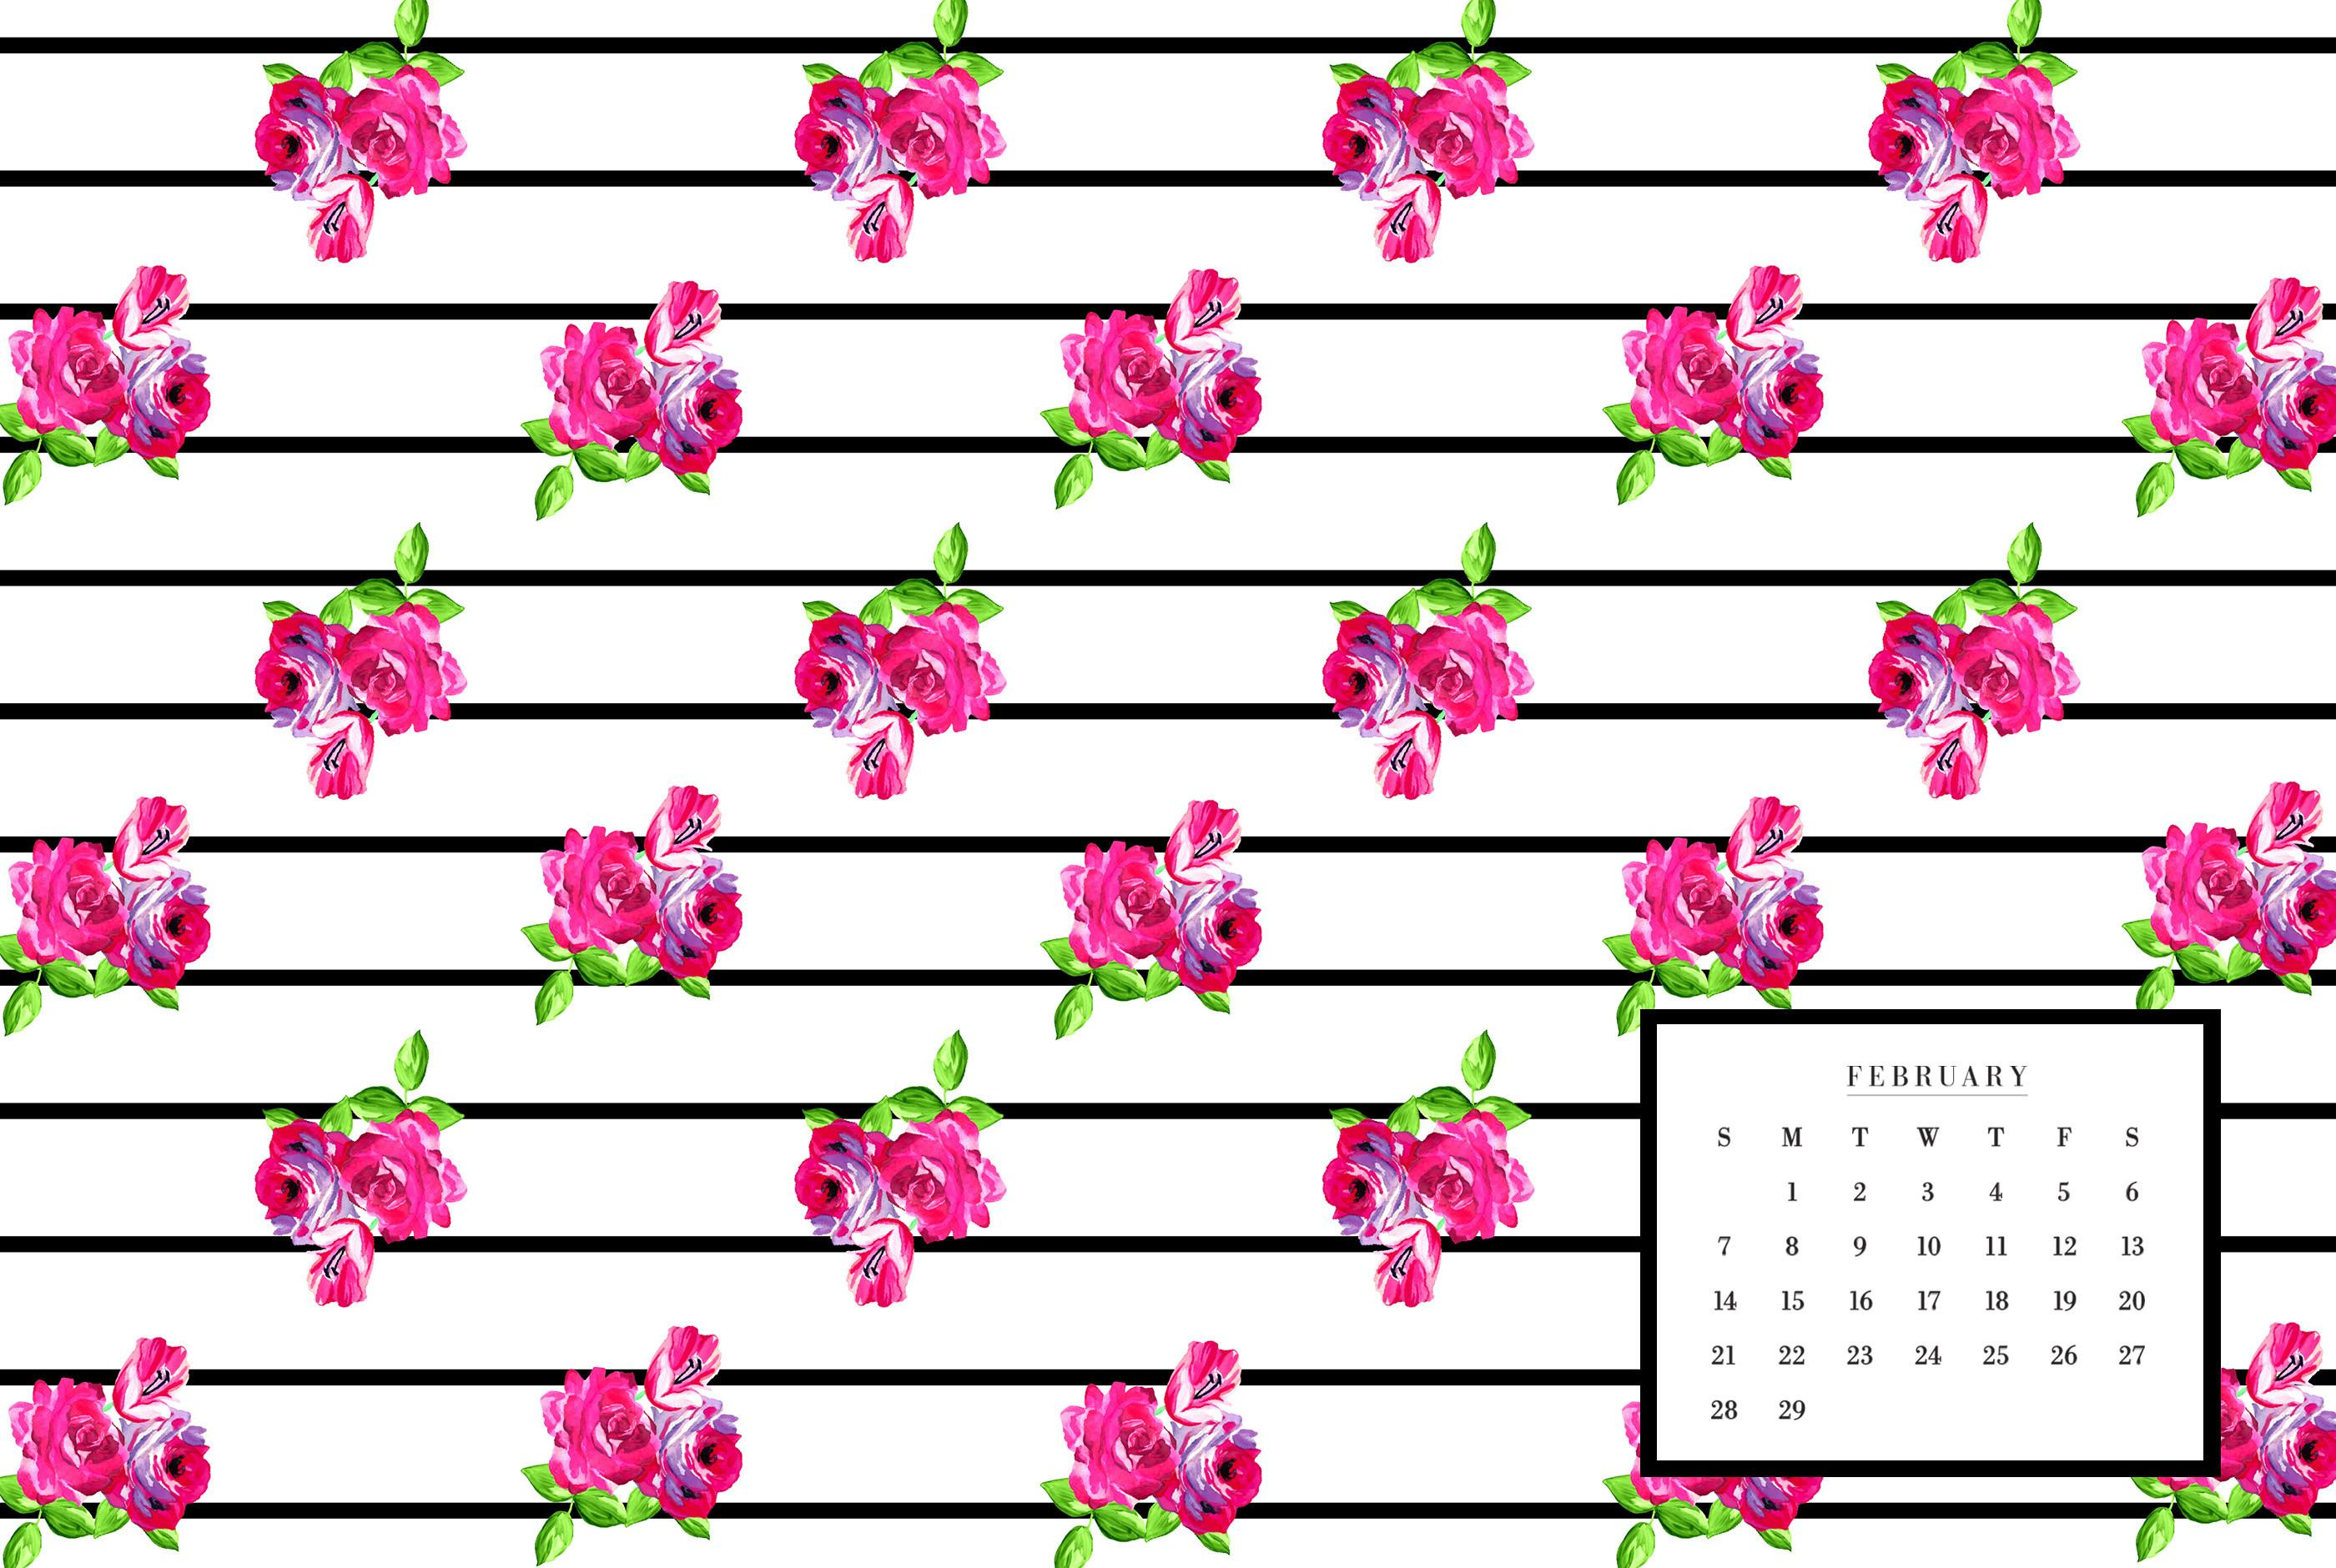 February 2016 May Designs